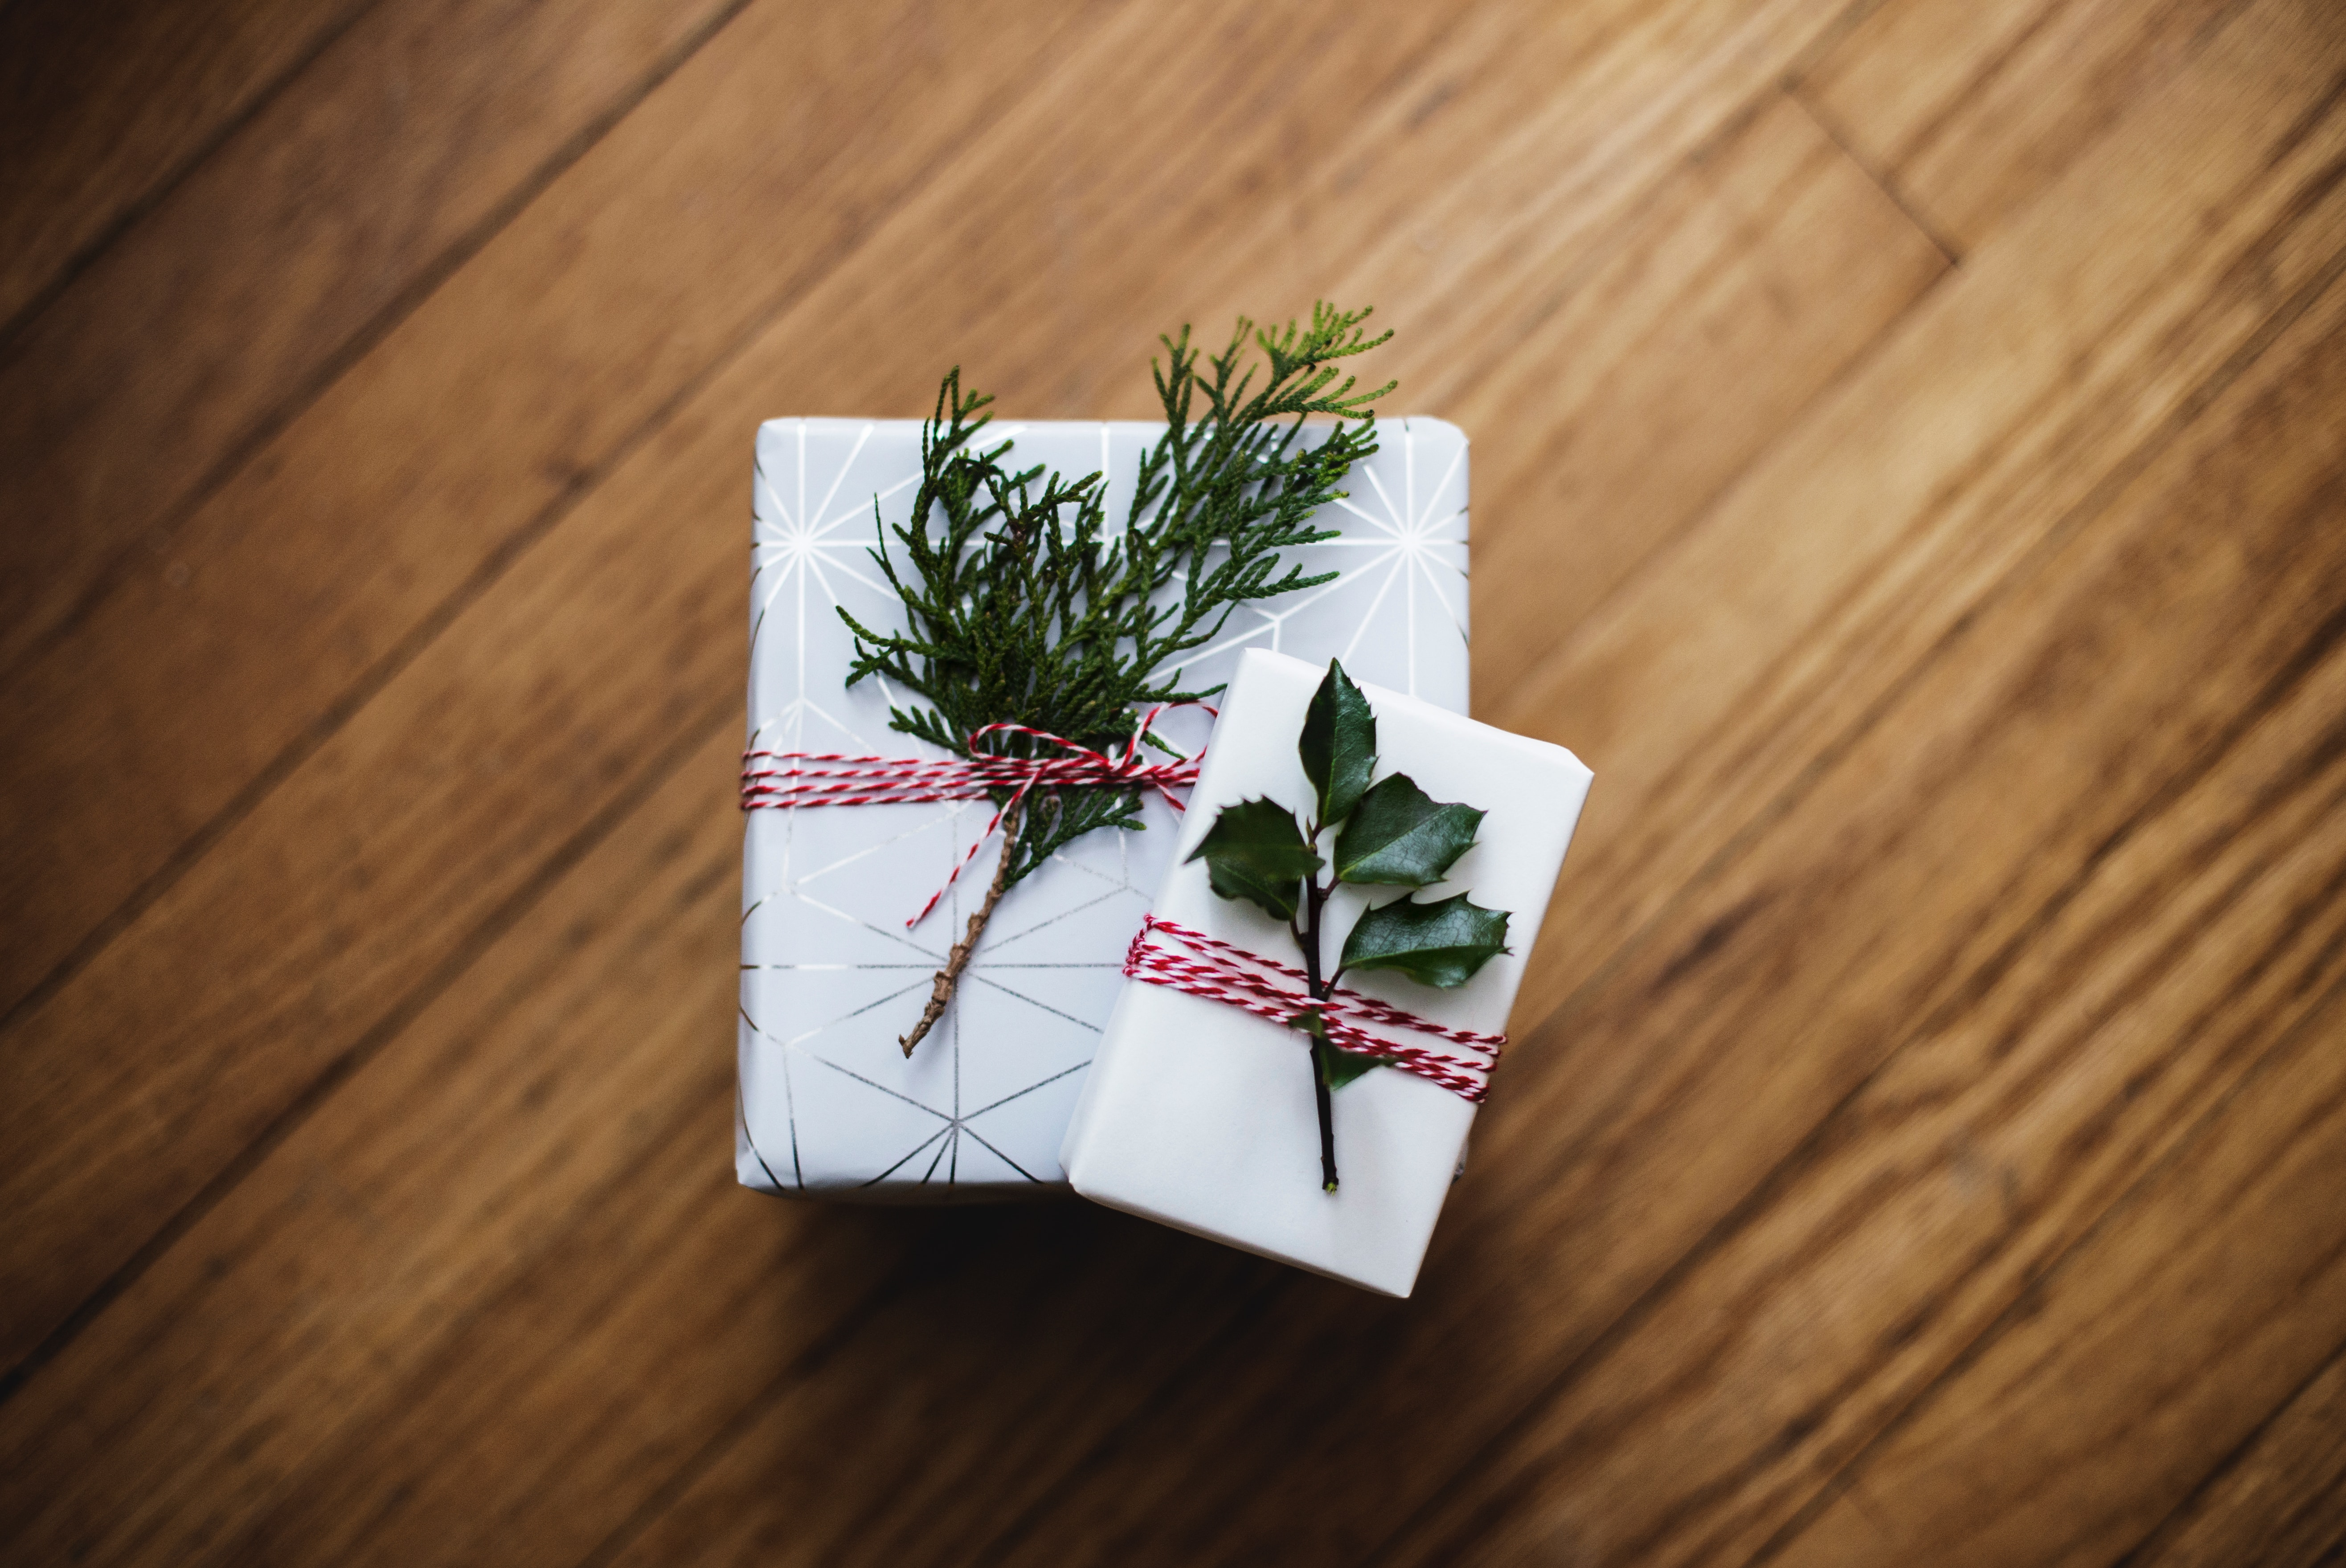 A lasting gift